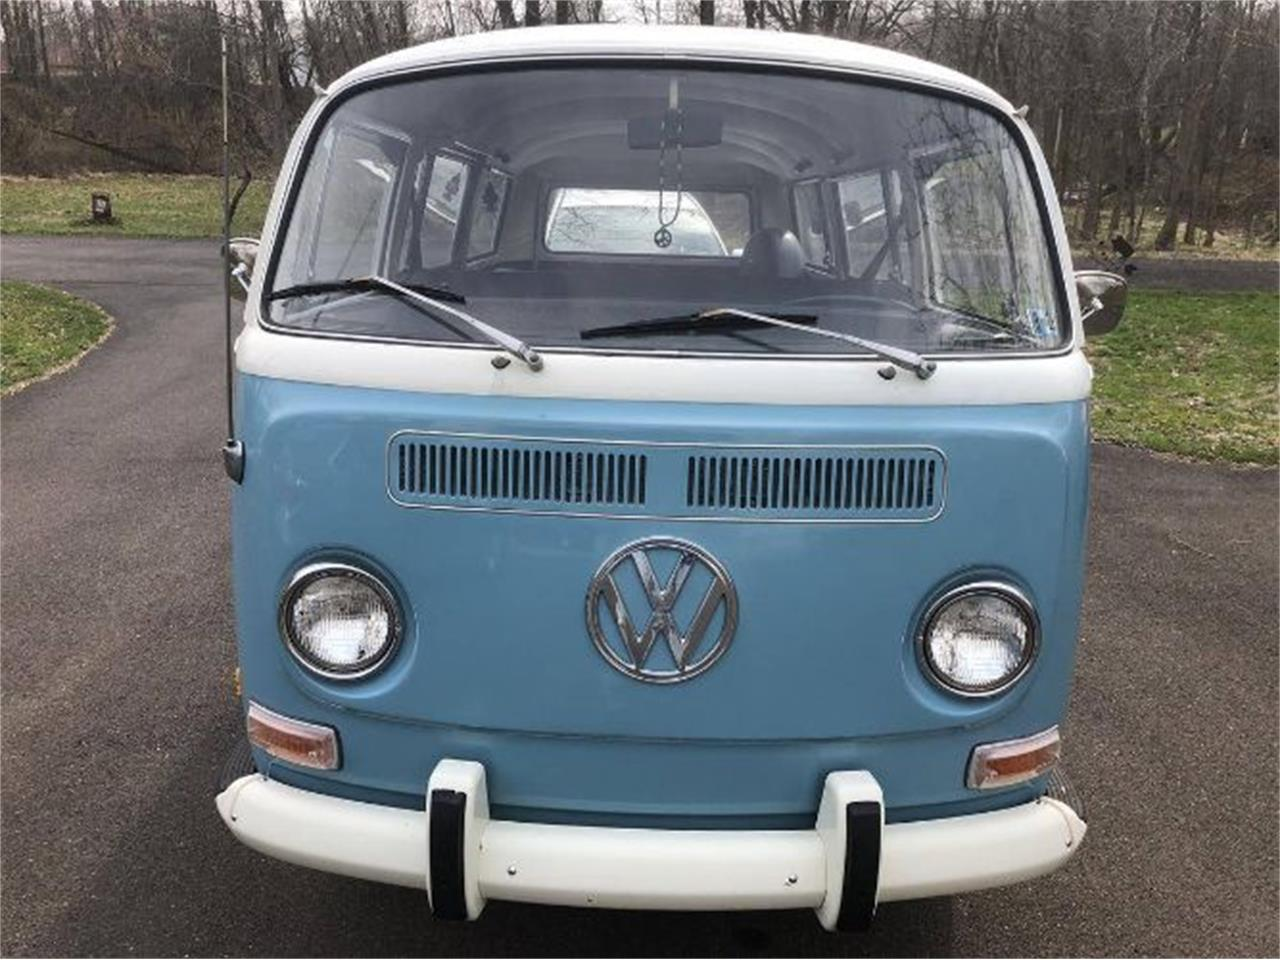 Large Picture of Classic 1971 Volkswagen Bus located in Cadillac Michigan - $30,995.00 - R0F3